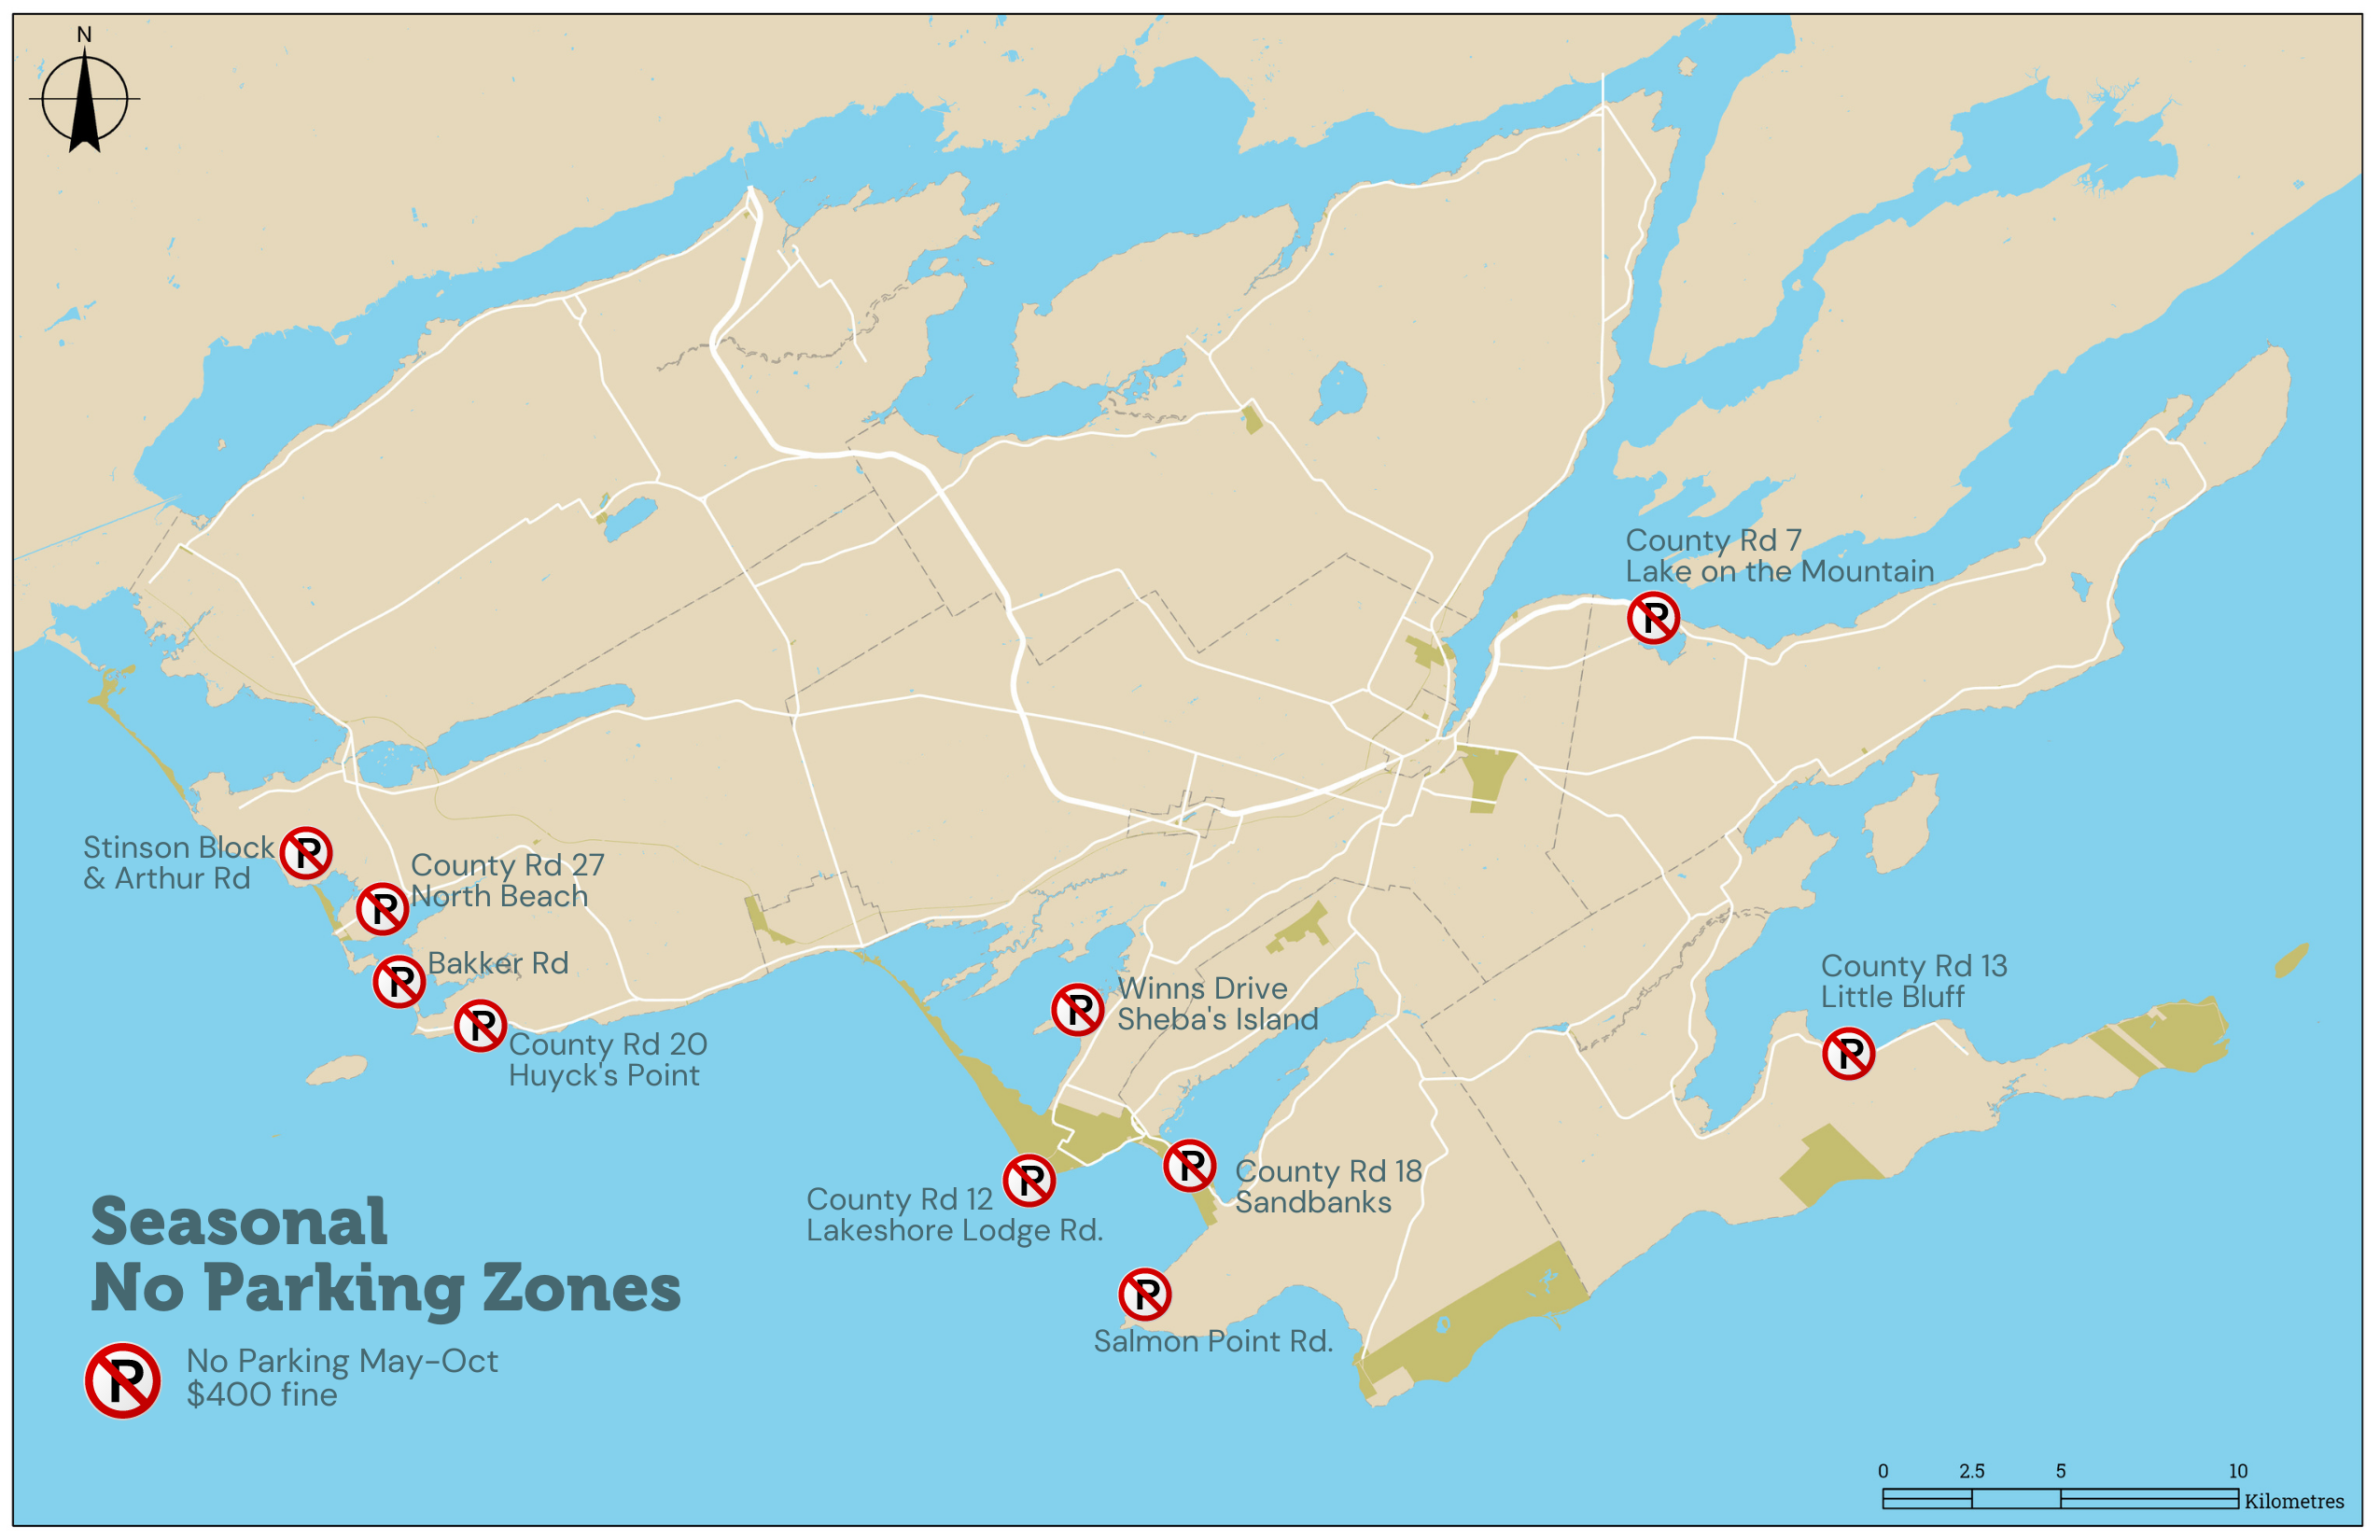 Map of Prince Edward County with seasonal no parking zones labeled on them.